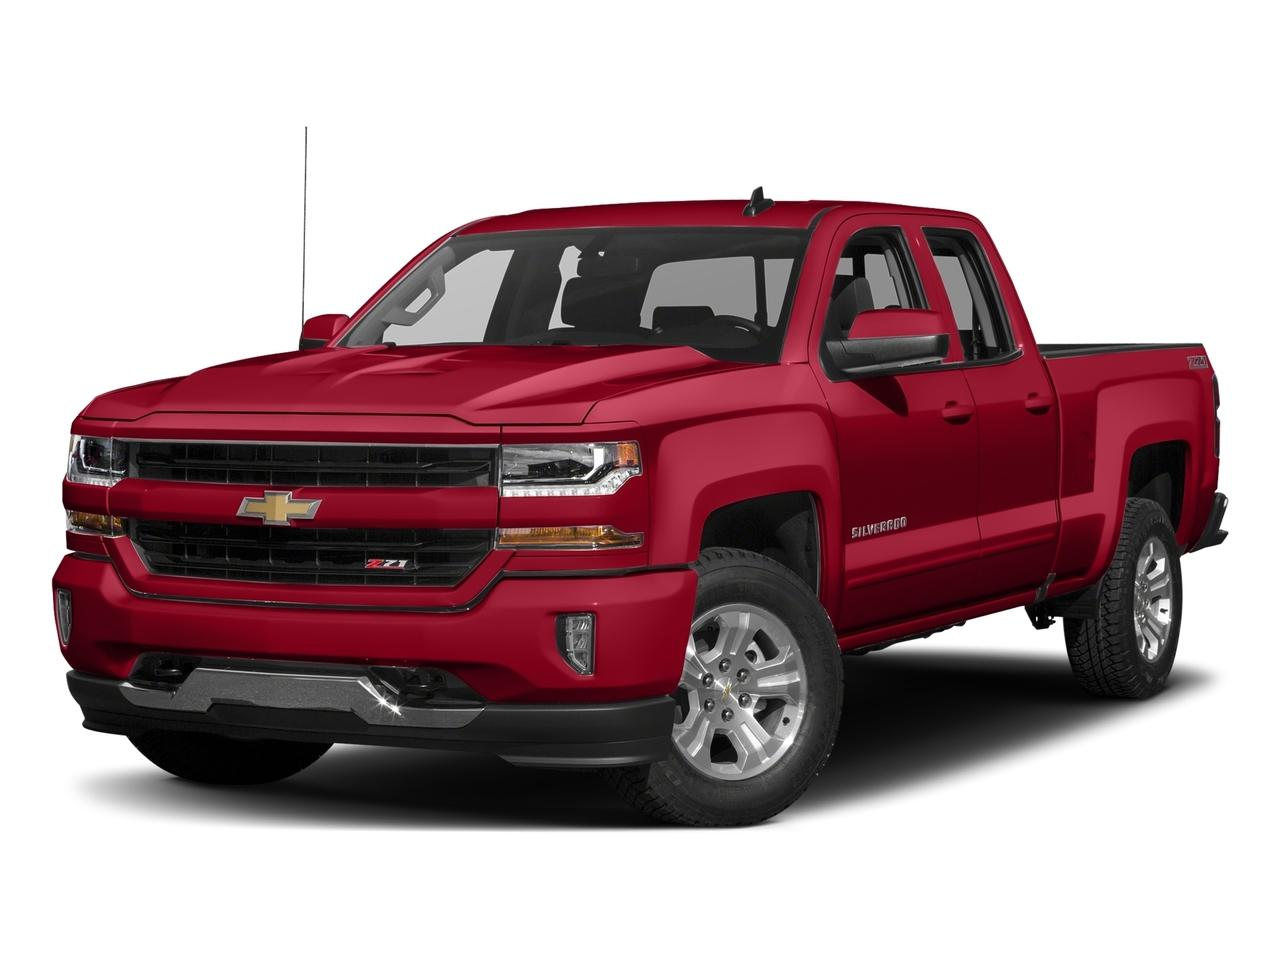 2018 Chevrolet Silverado 1500 Vehicle Photo in Rockville, MD 20852